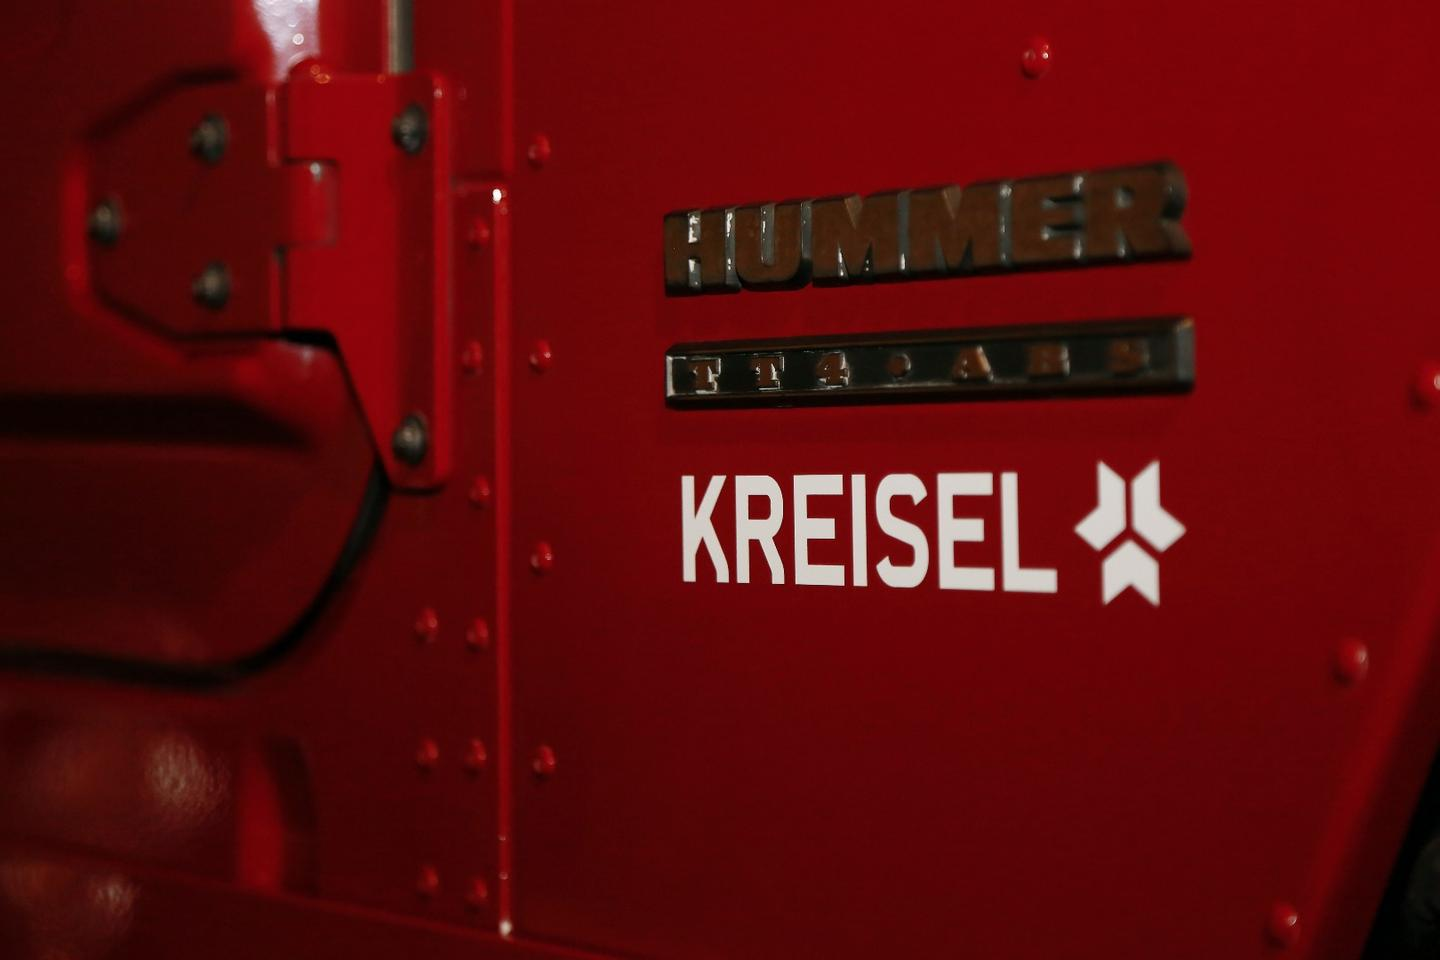 Kreisel Electric says the electric conversion of the Hummer H1 took around two months